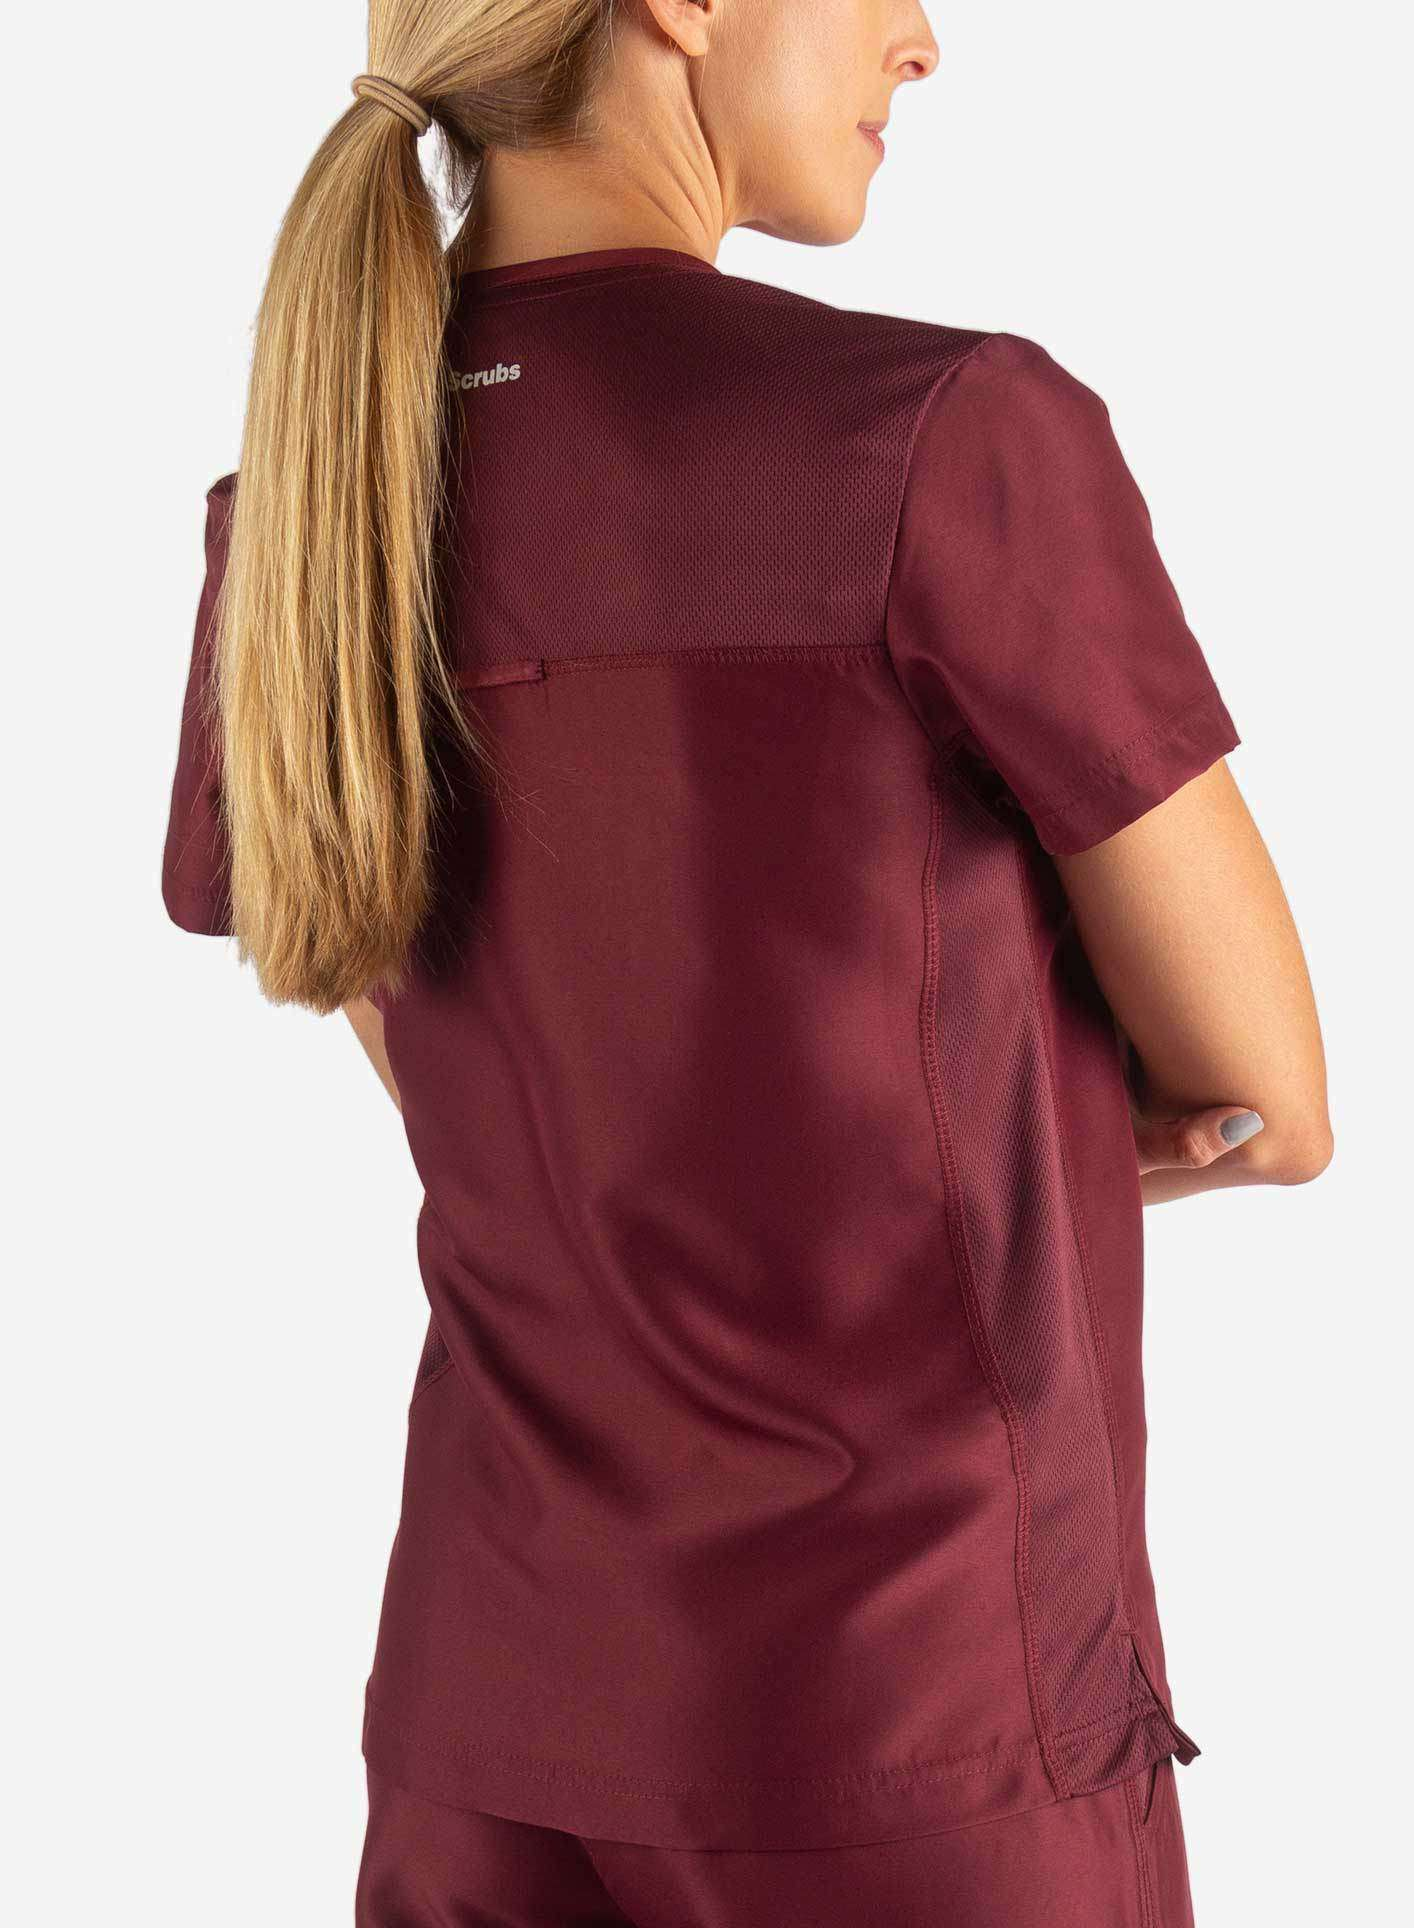 Women's Fitted Scrub Top in Bold Burgundy Back